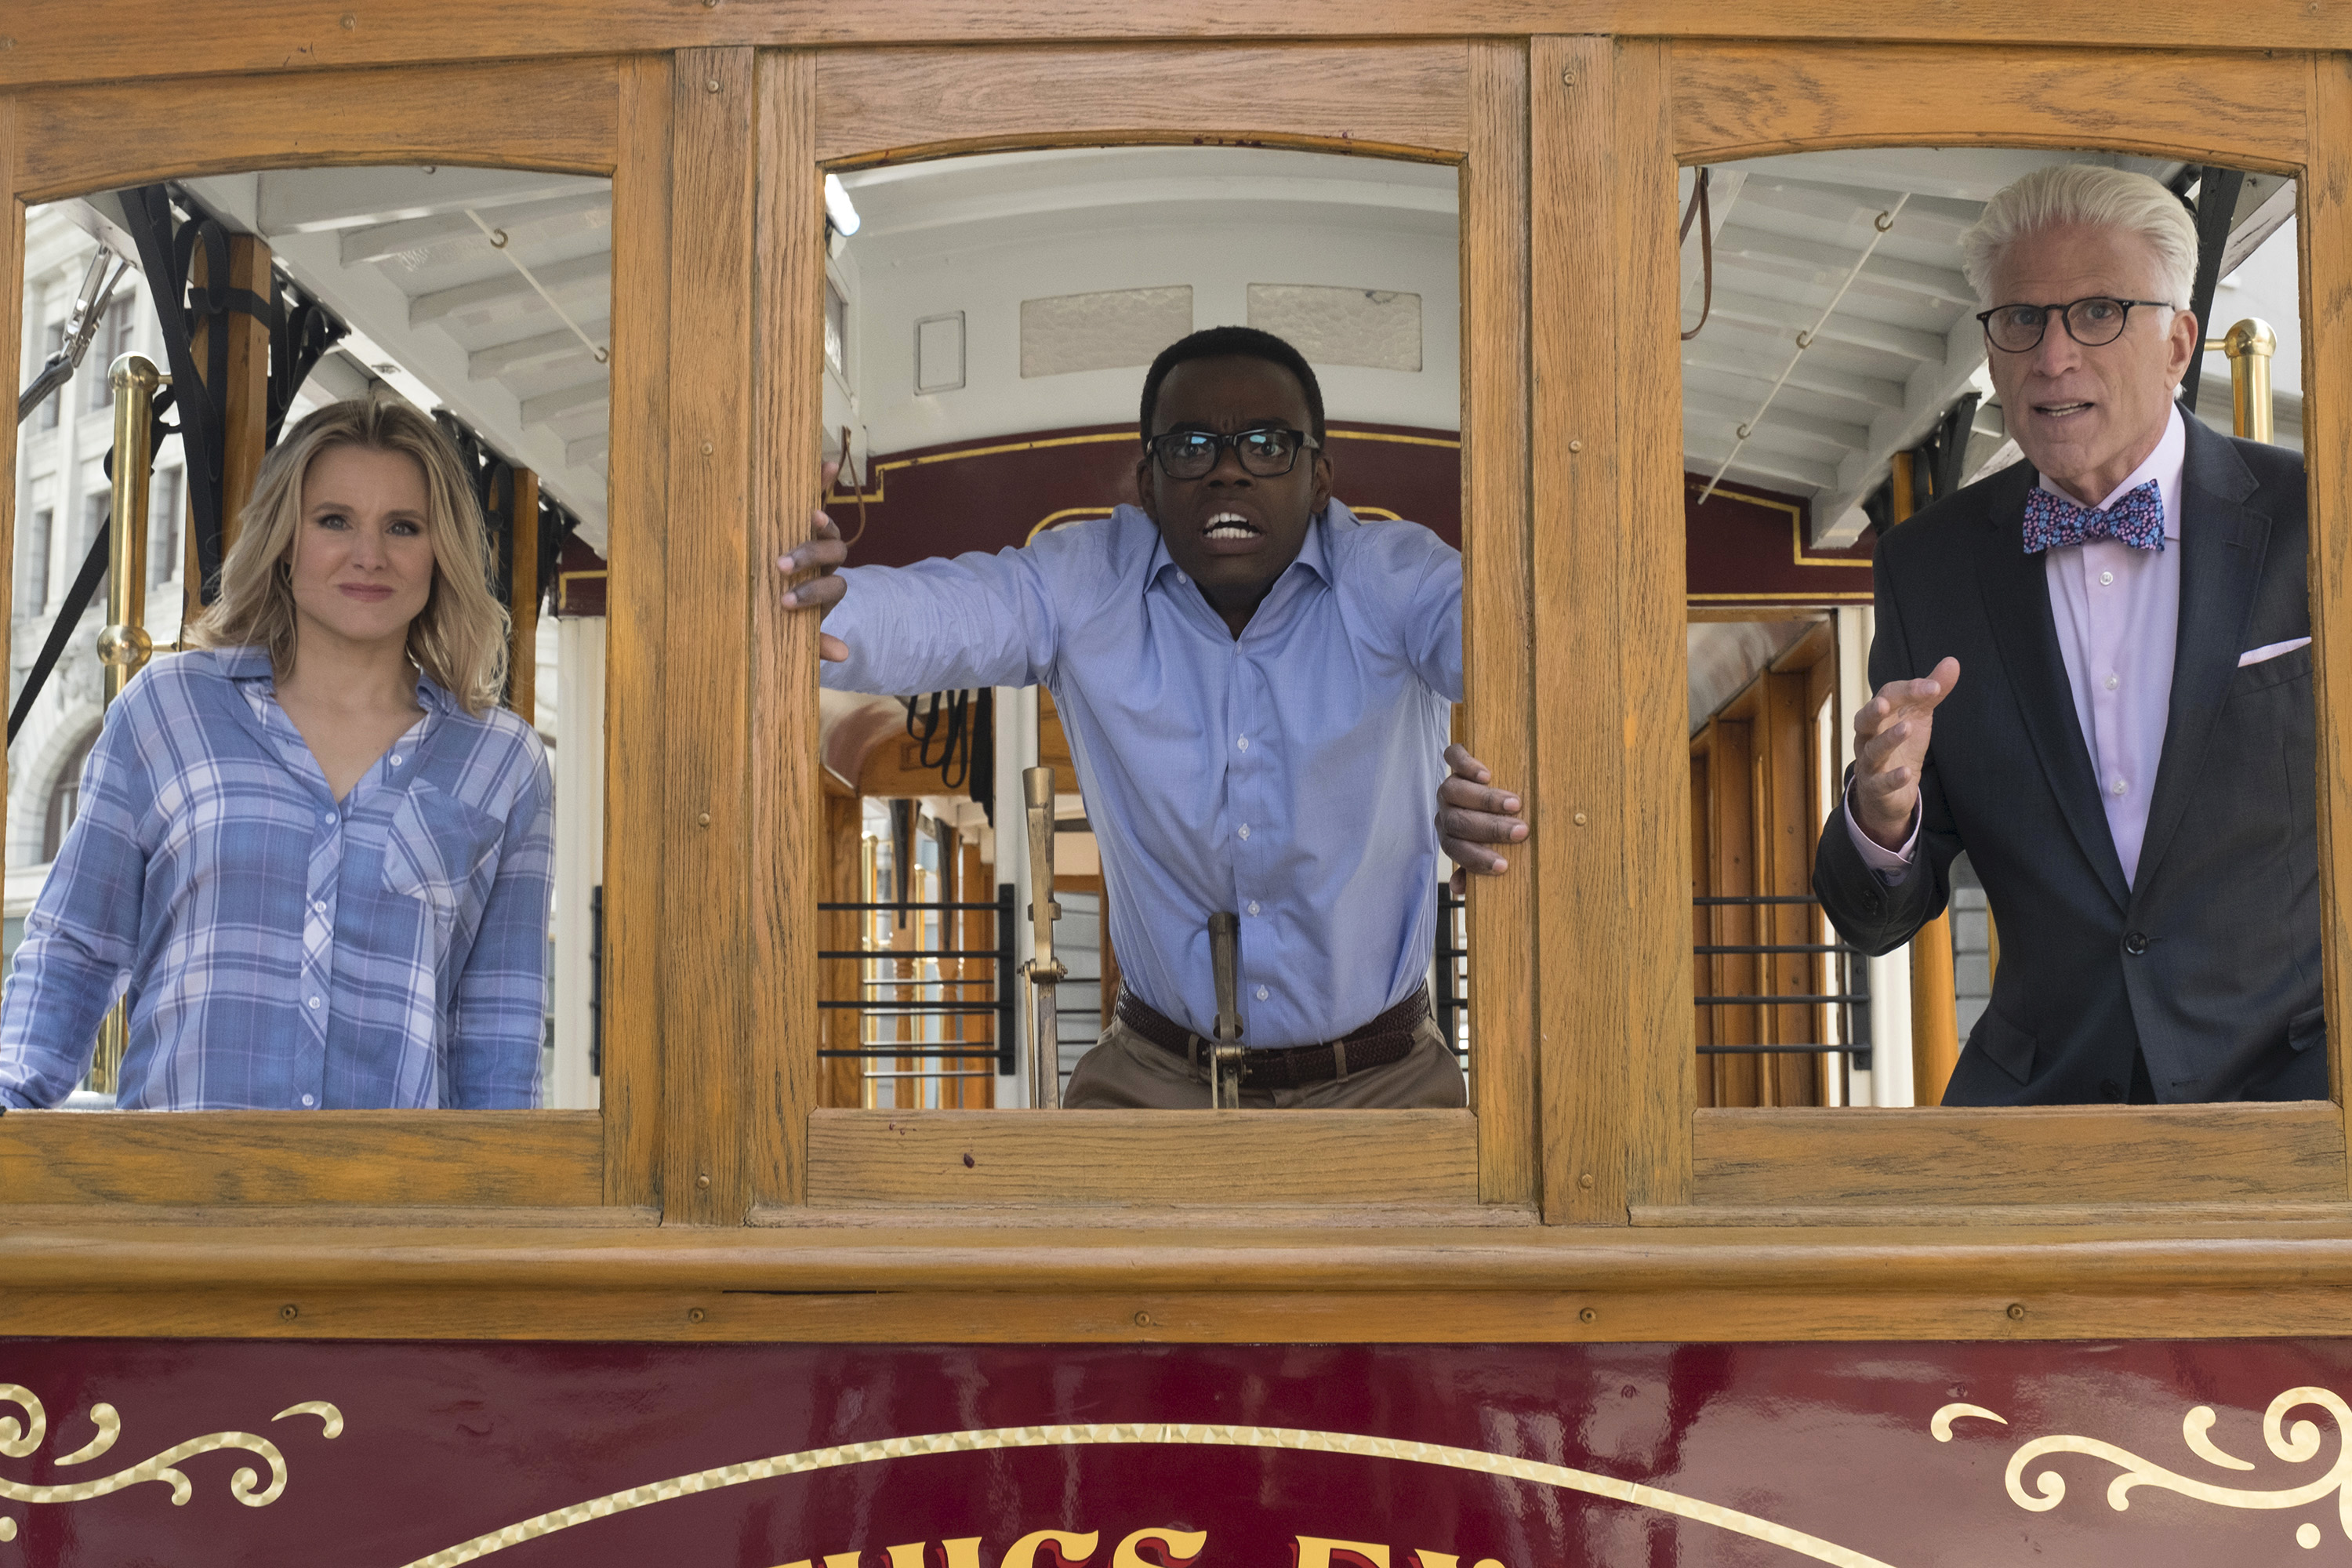 "Three characters from the TV show ""The Good Place"" stand in the front windows of a trolley."